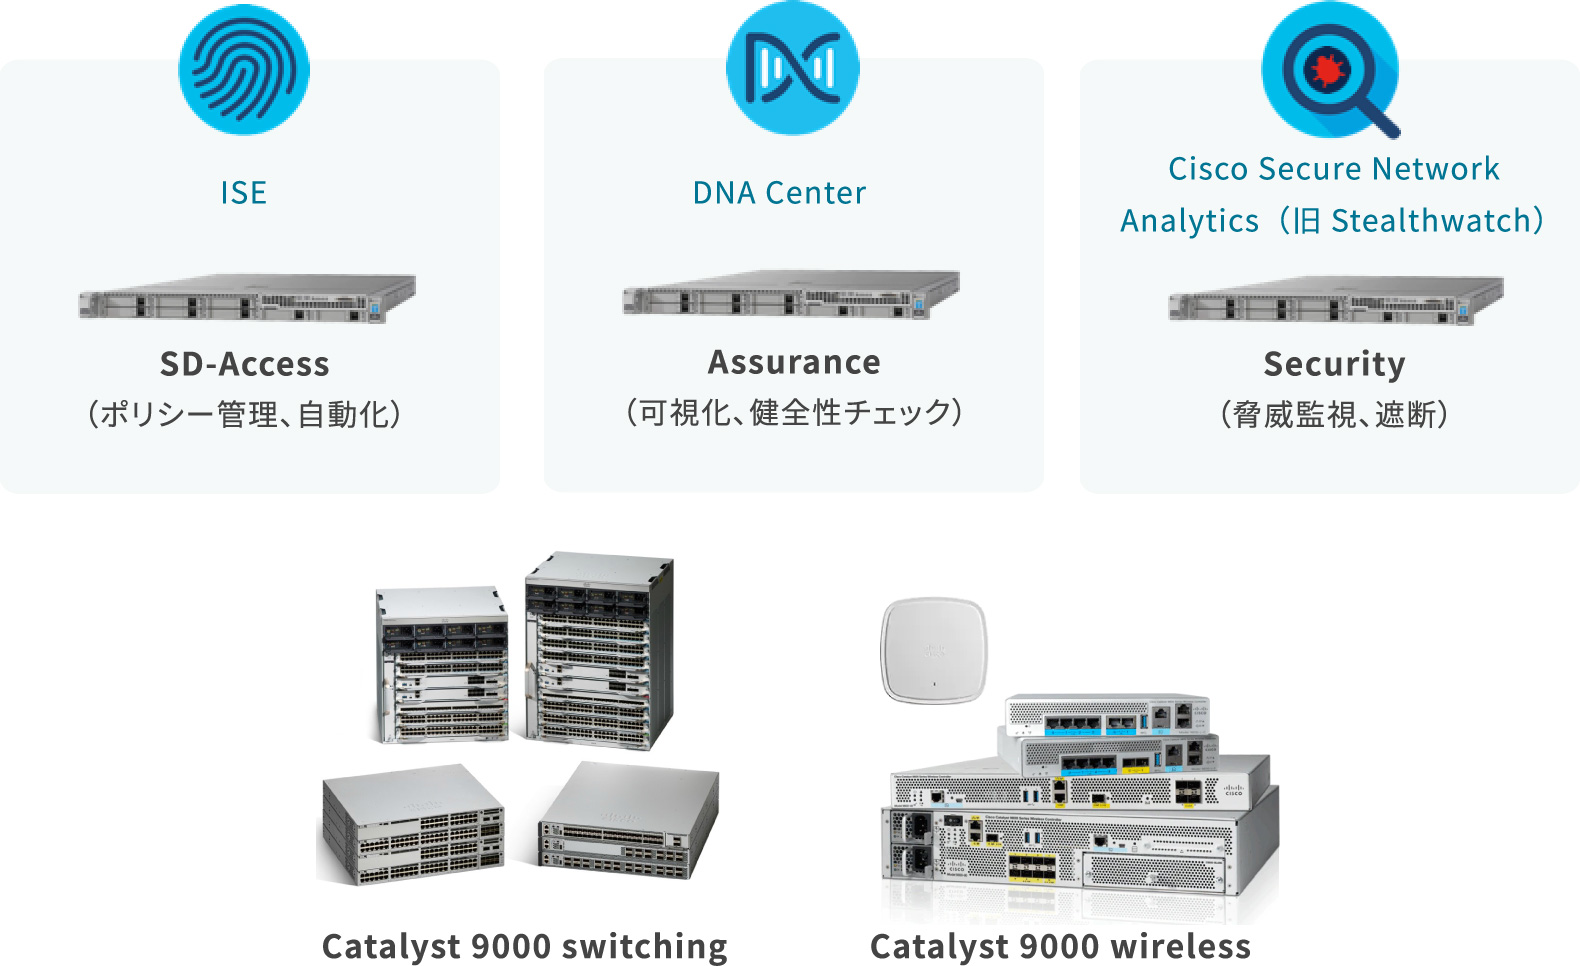 ISE:SD-Access(ポリシー管理、自動化) DNA center:Assurance(可視化、健全性チェック)、ハードウェア製品 Cisco Secure Network Analytics(旧Stealthwatch):Security(脅威監視、遮断) Catalyst 9000 switching Catalyst 9000 wireless